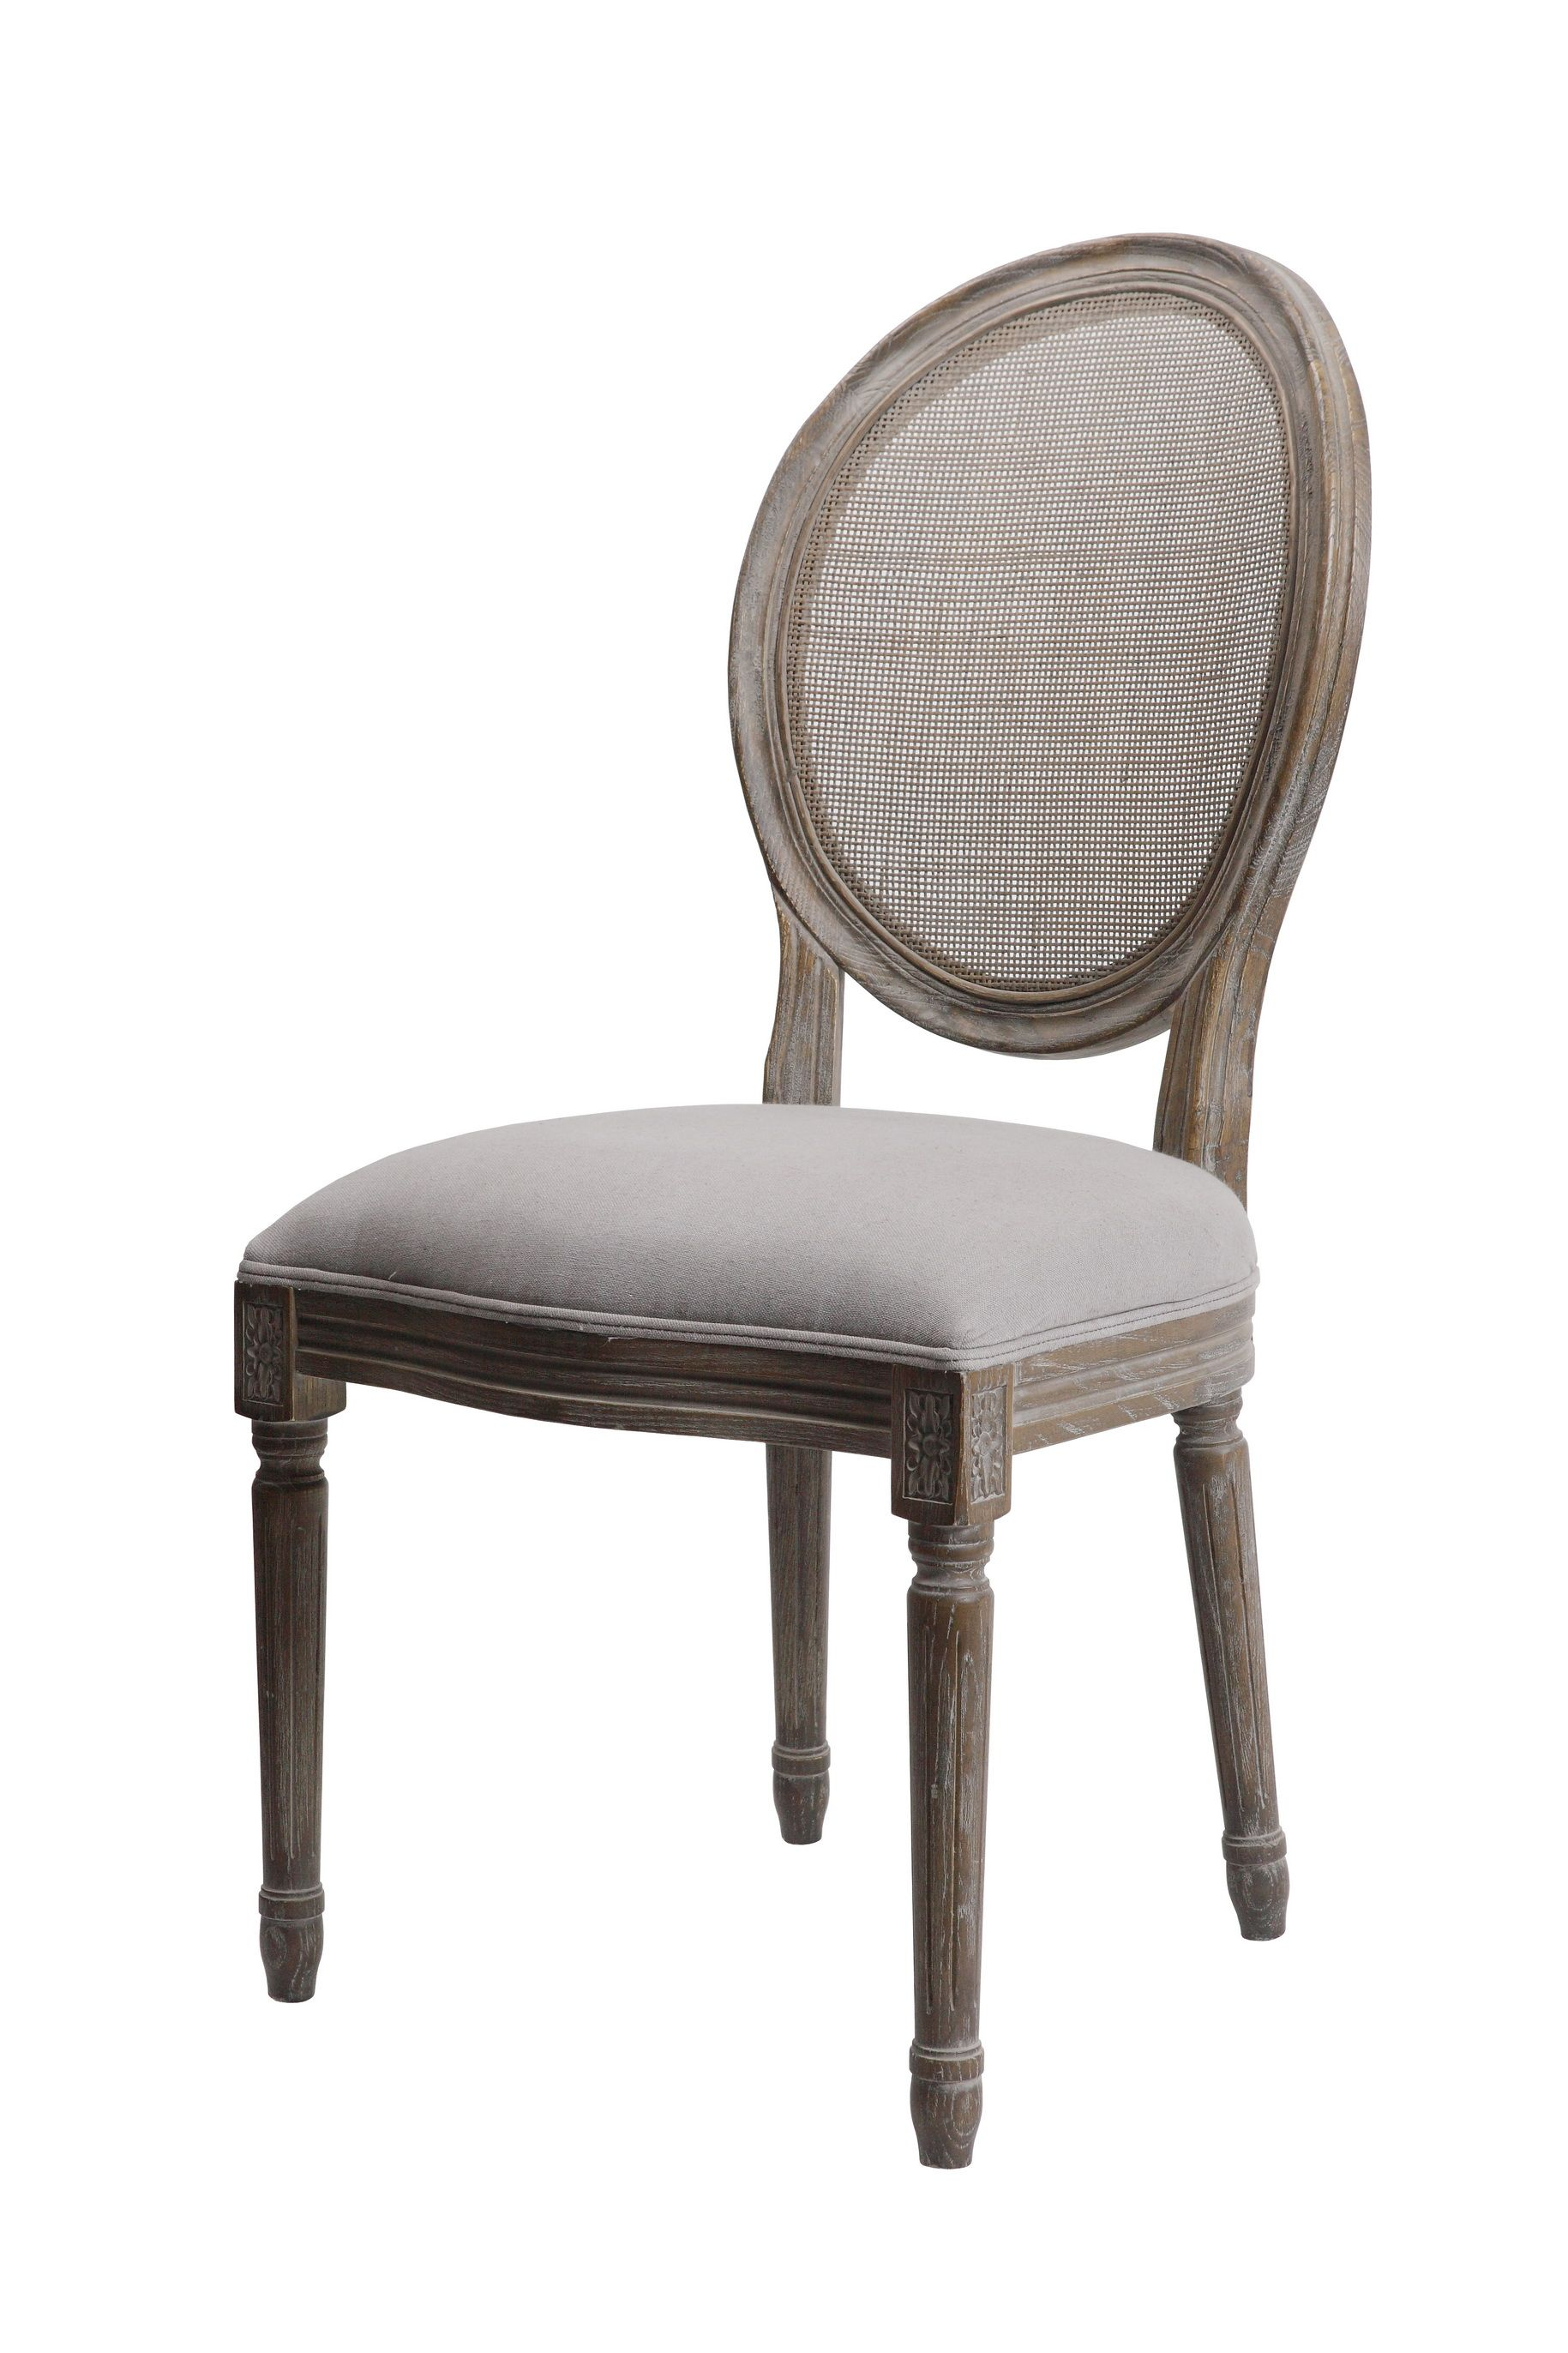 Round Maxwell chair in Dyed Grey linen by Forty West designs